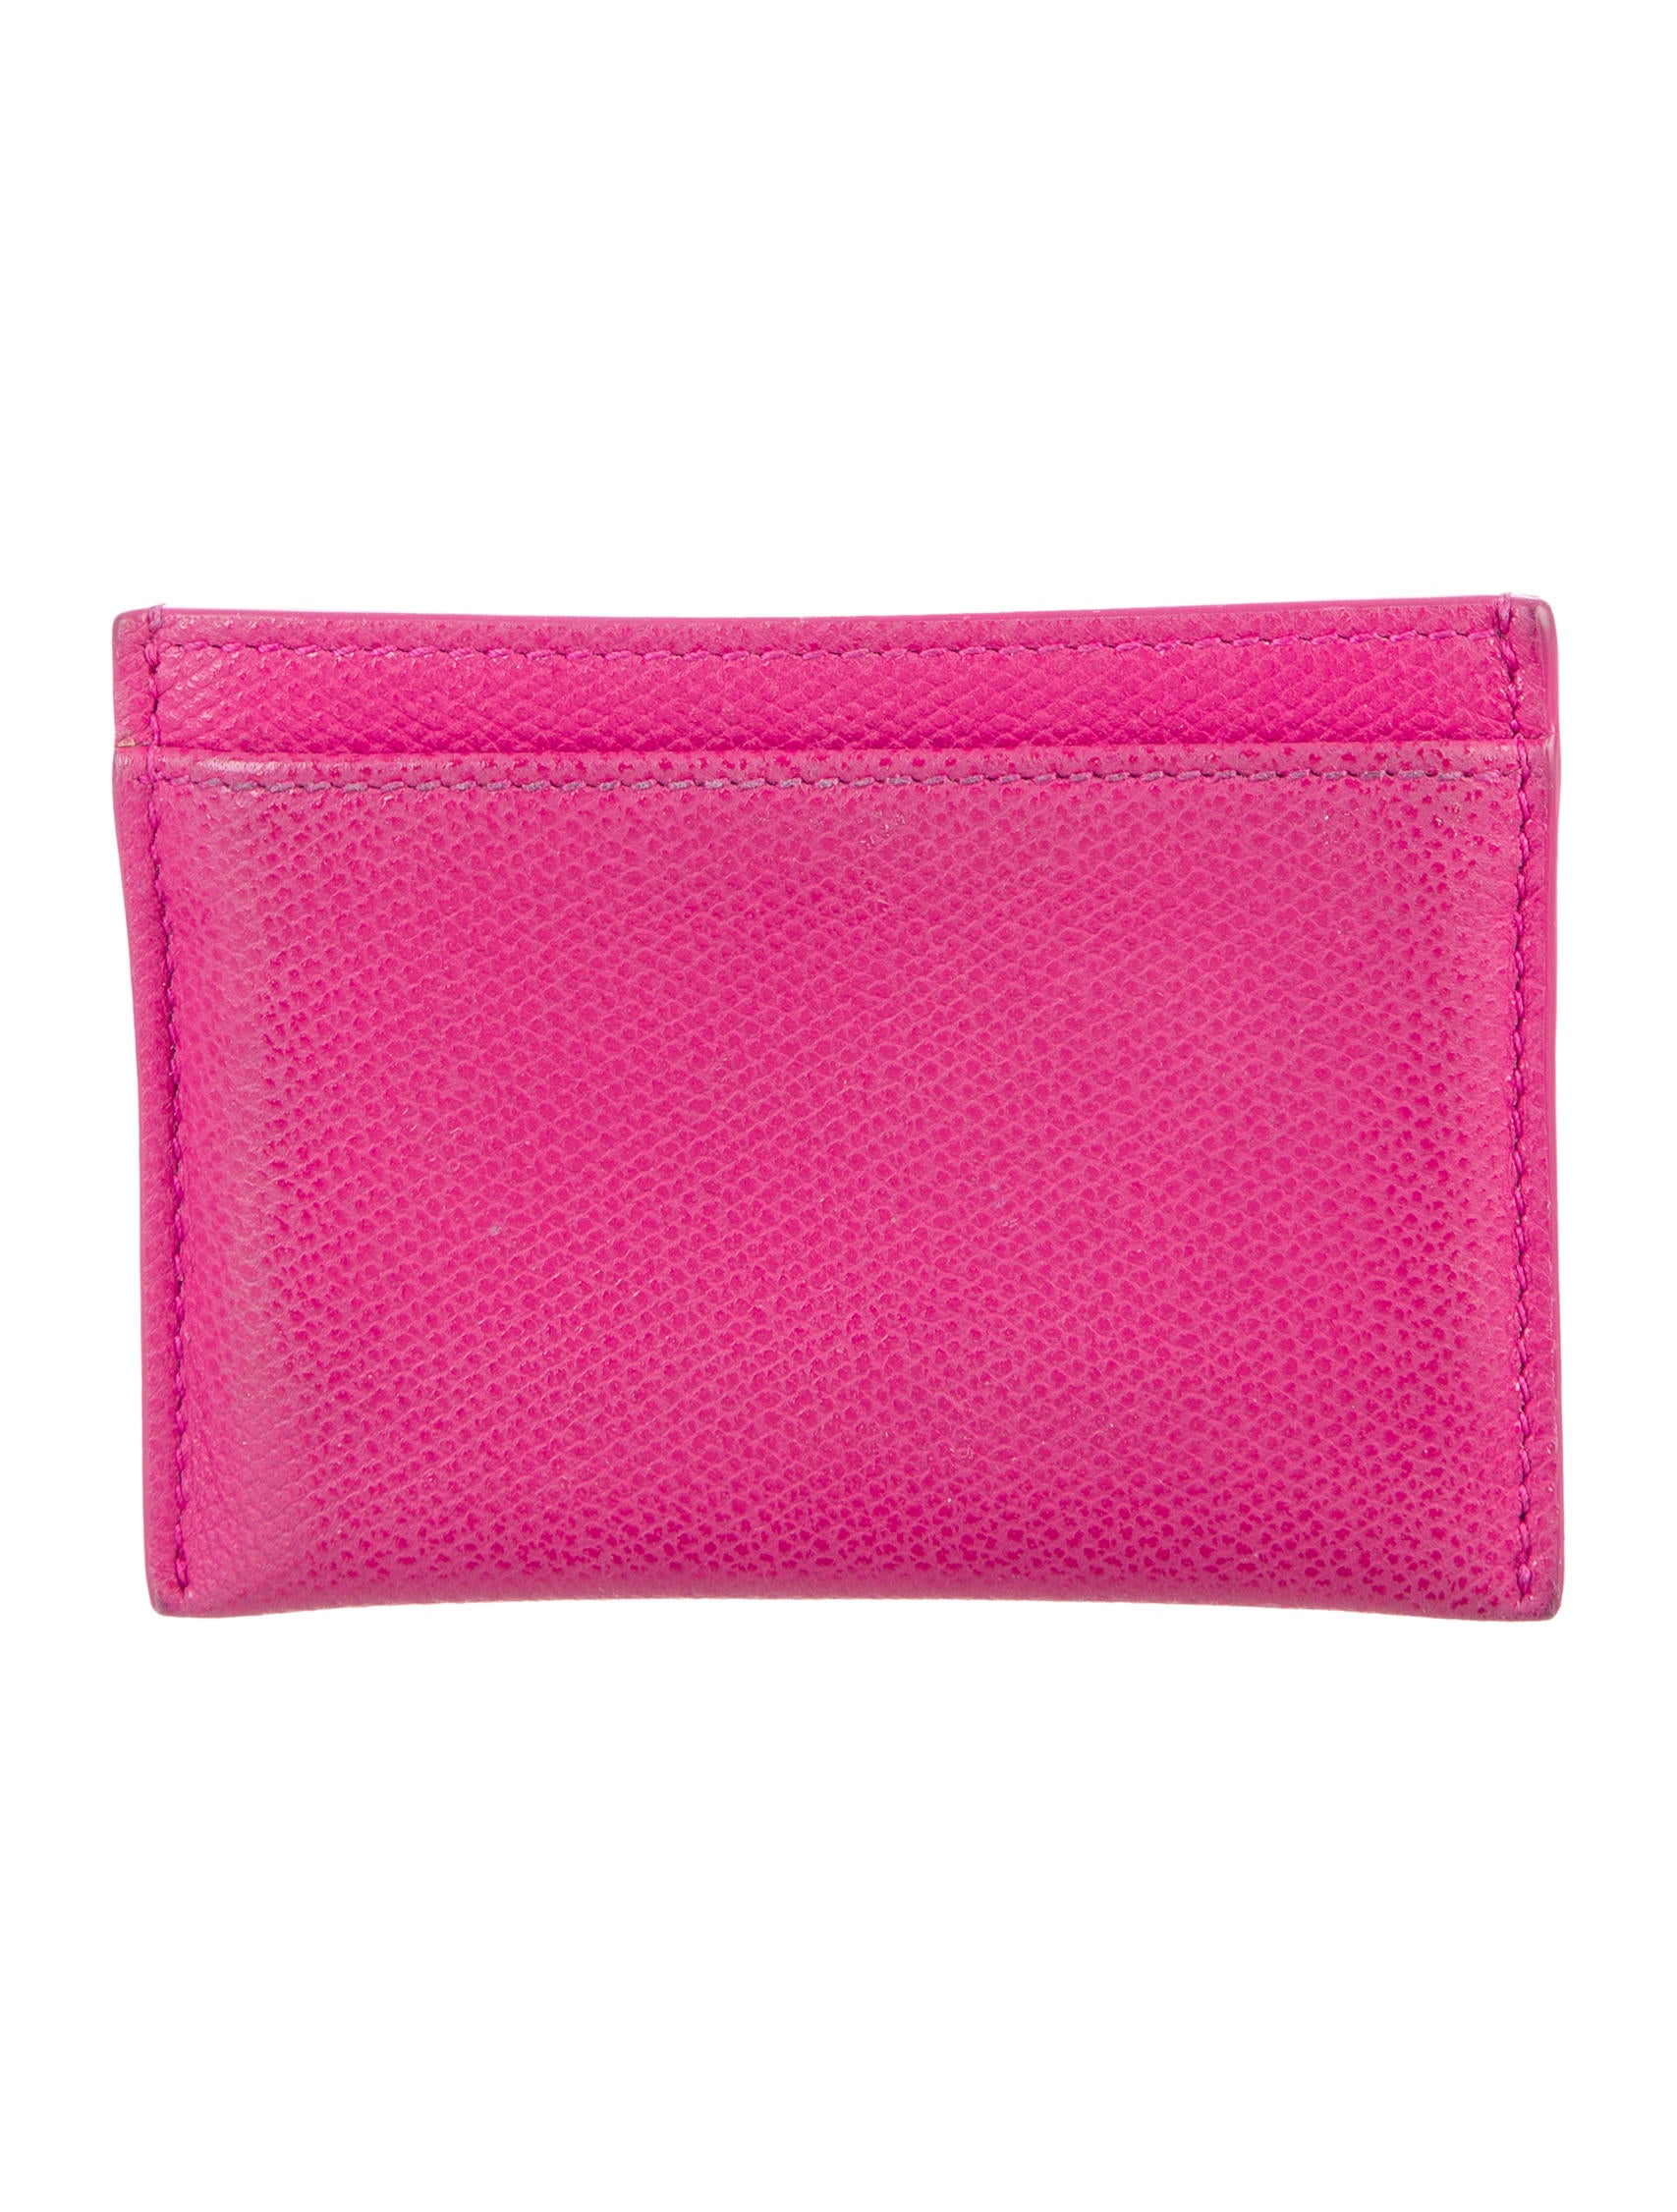 Tiffany & Co. Pink Leather Cardholder